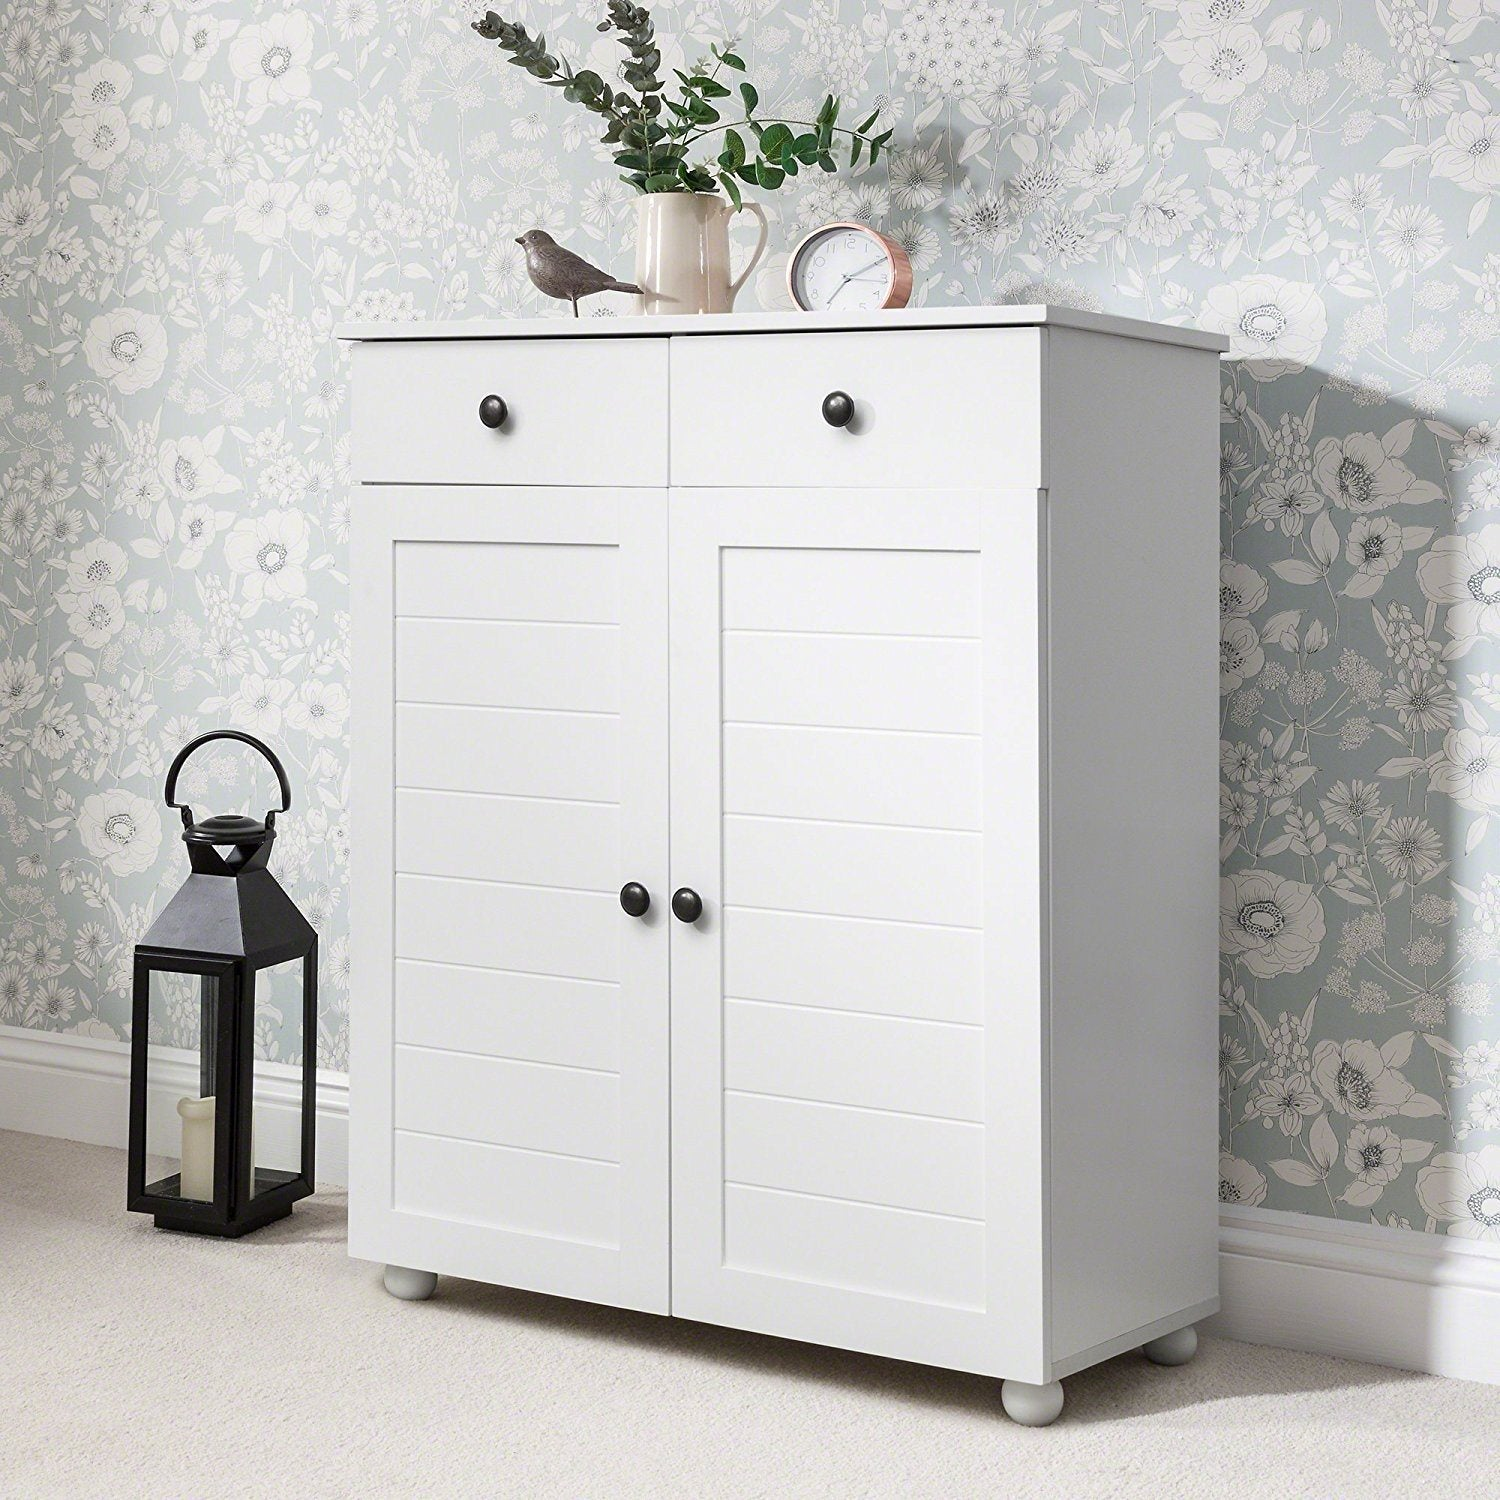 White Shoe Storage Cabinet Storage Cupboard Wooden -  Laura James